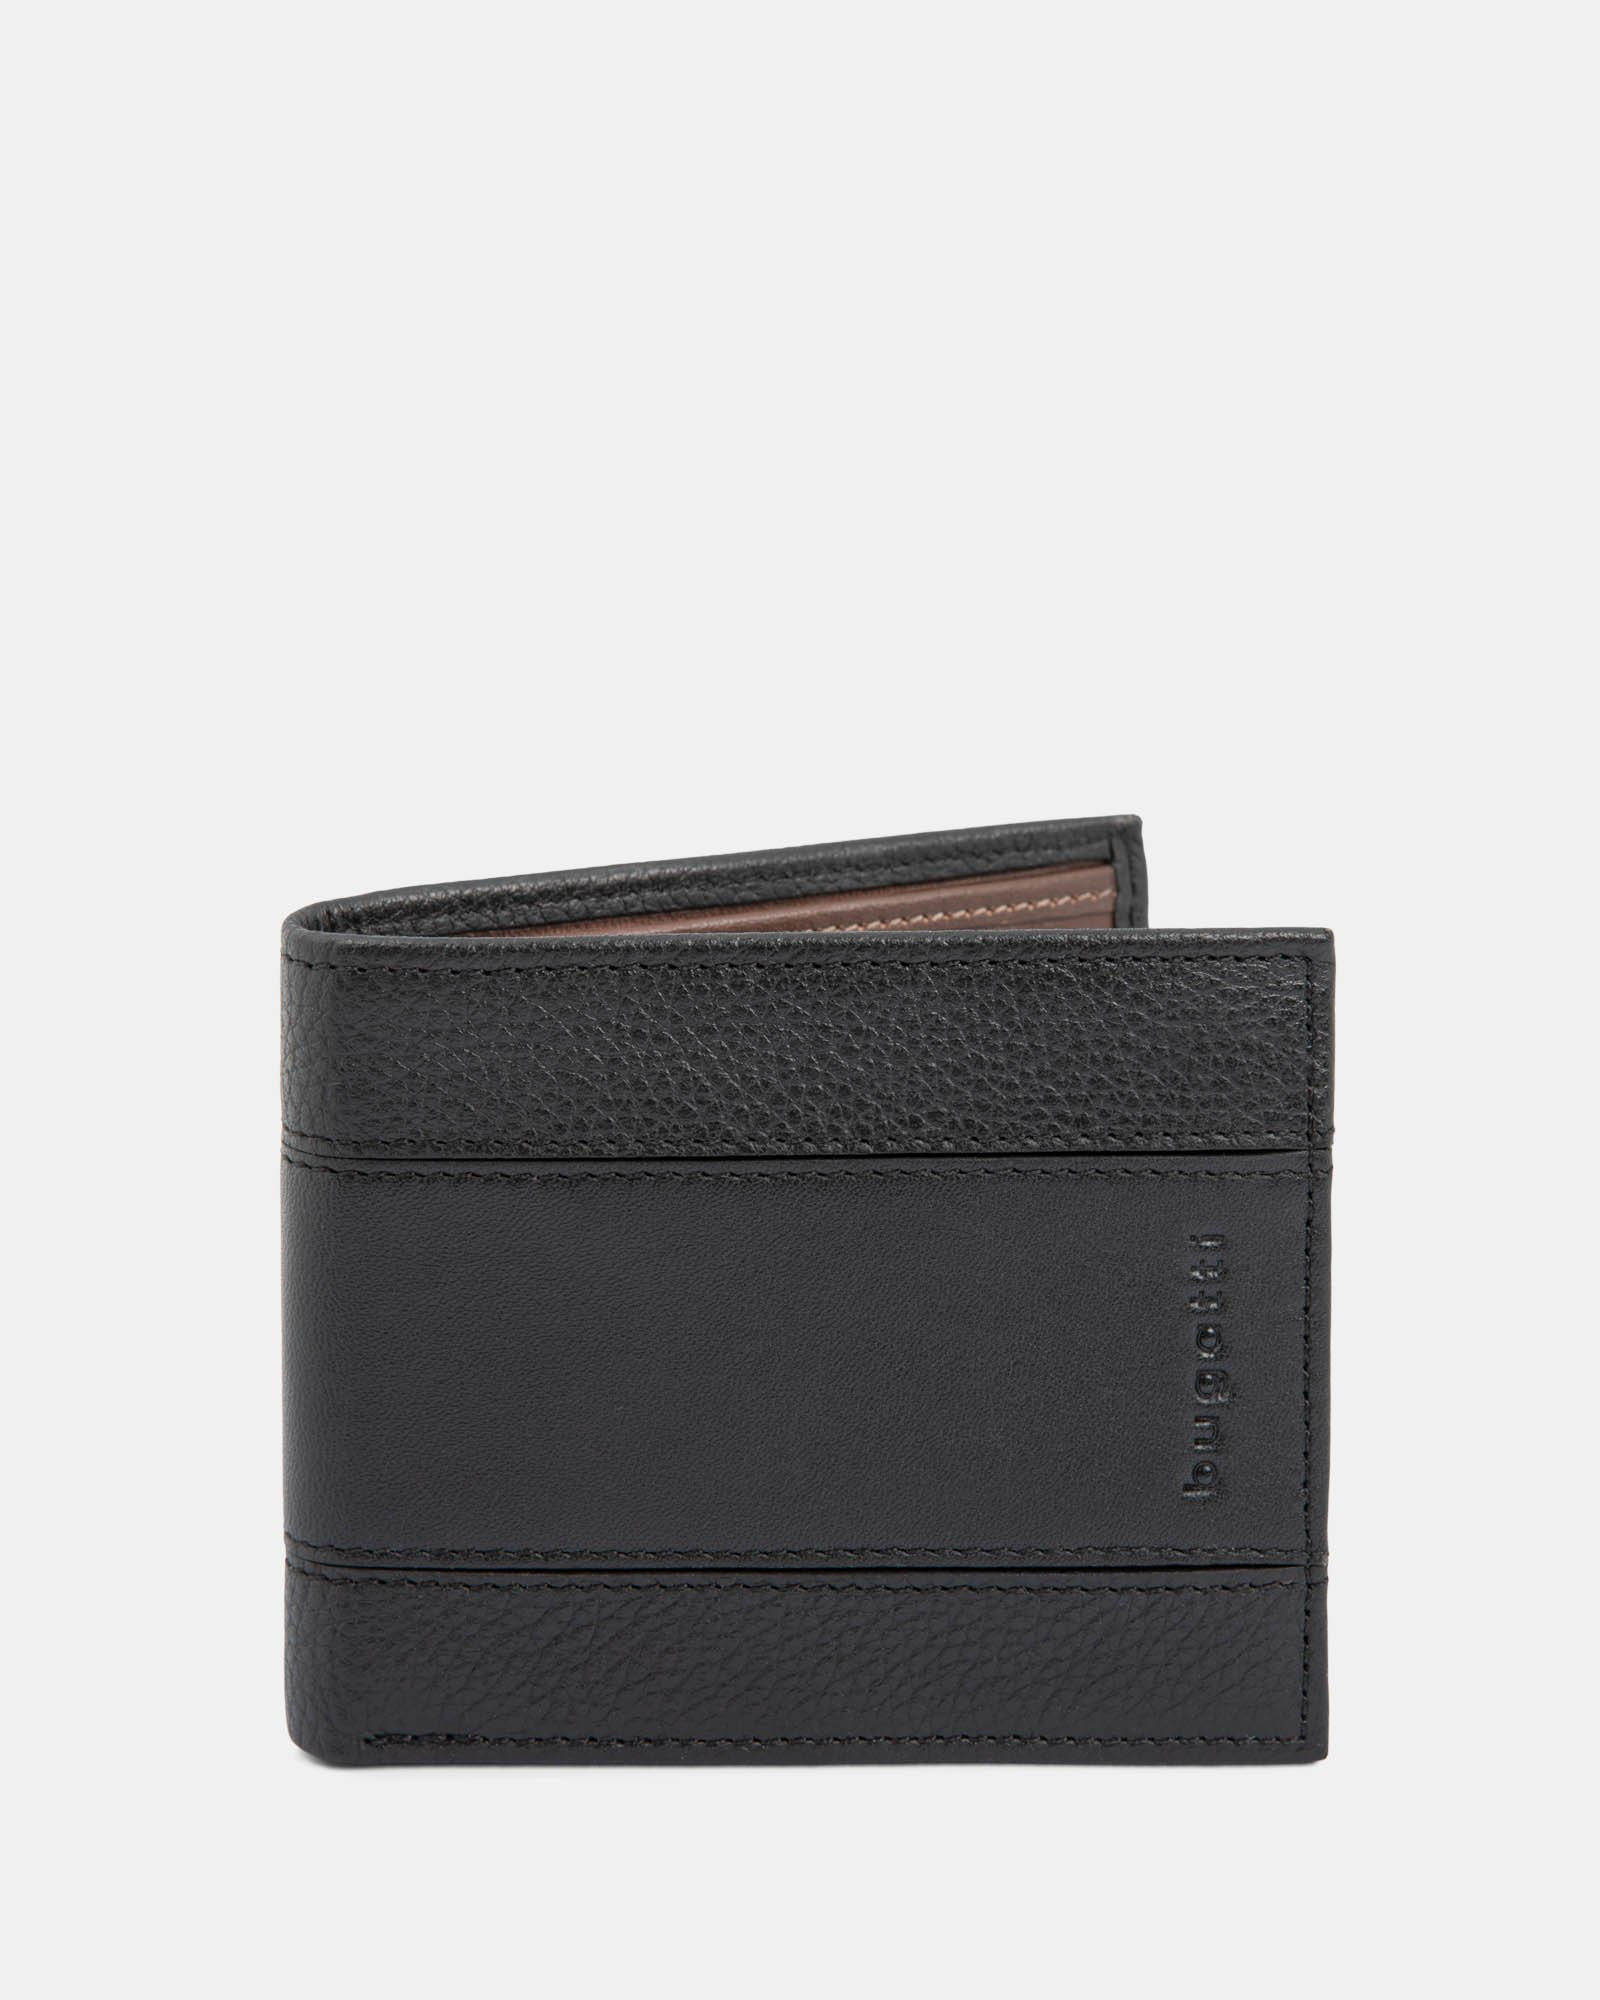 BUGATTI - LEATHER WALLET WITH RFID PROTECTION AND ID WINDOW – BLACK - Bugatti - Zoom